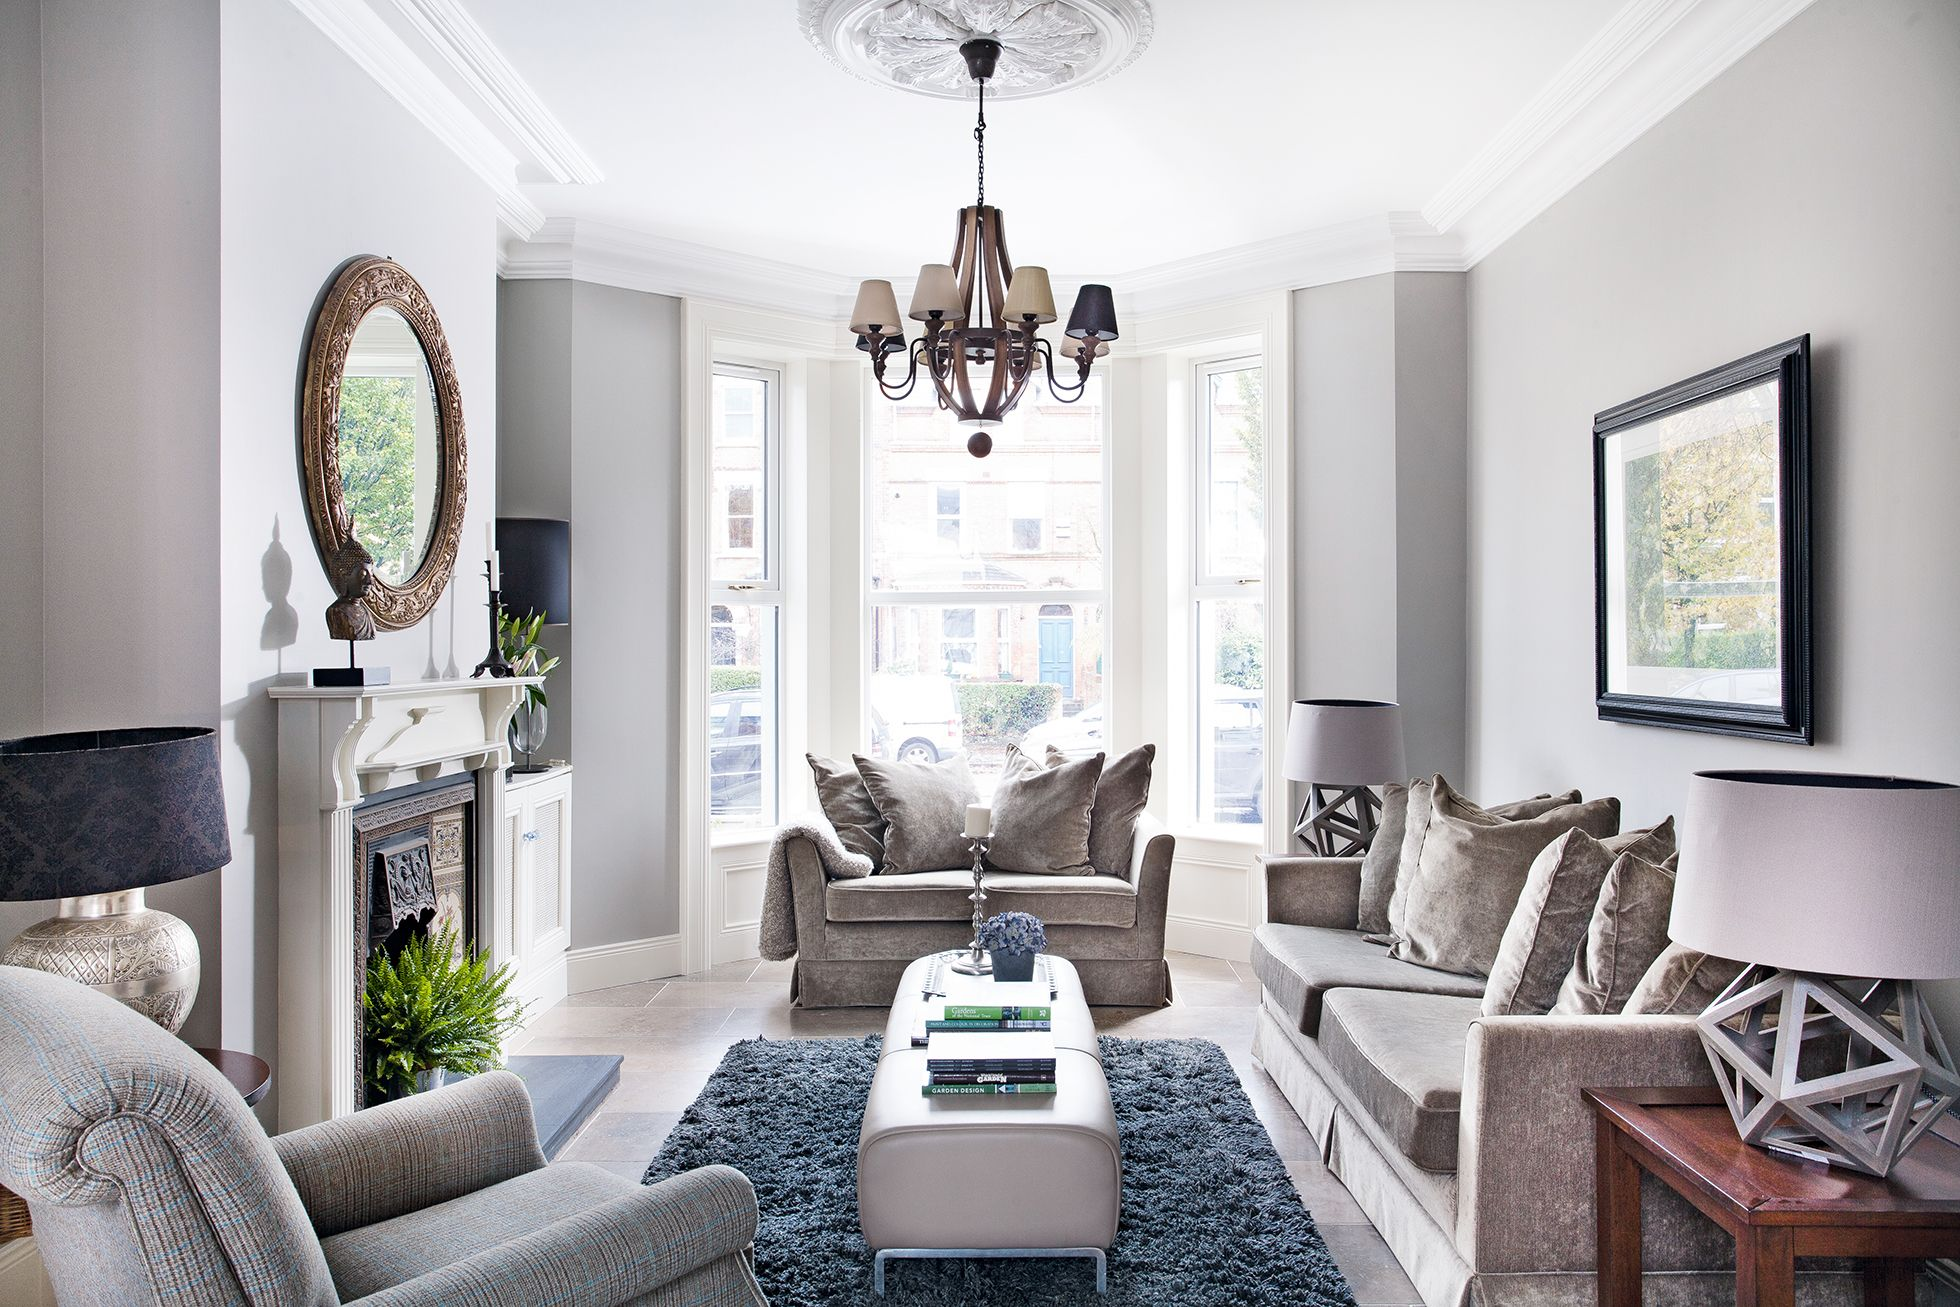 Victorian House Living Room Andrew Brennan Has Redesigned The Layout Of His Townhouse While